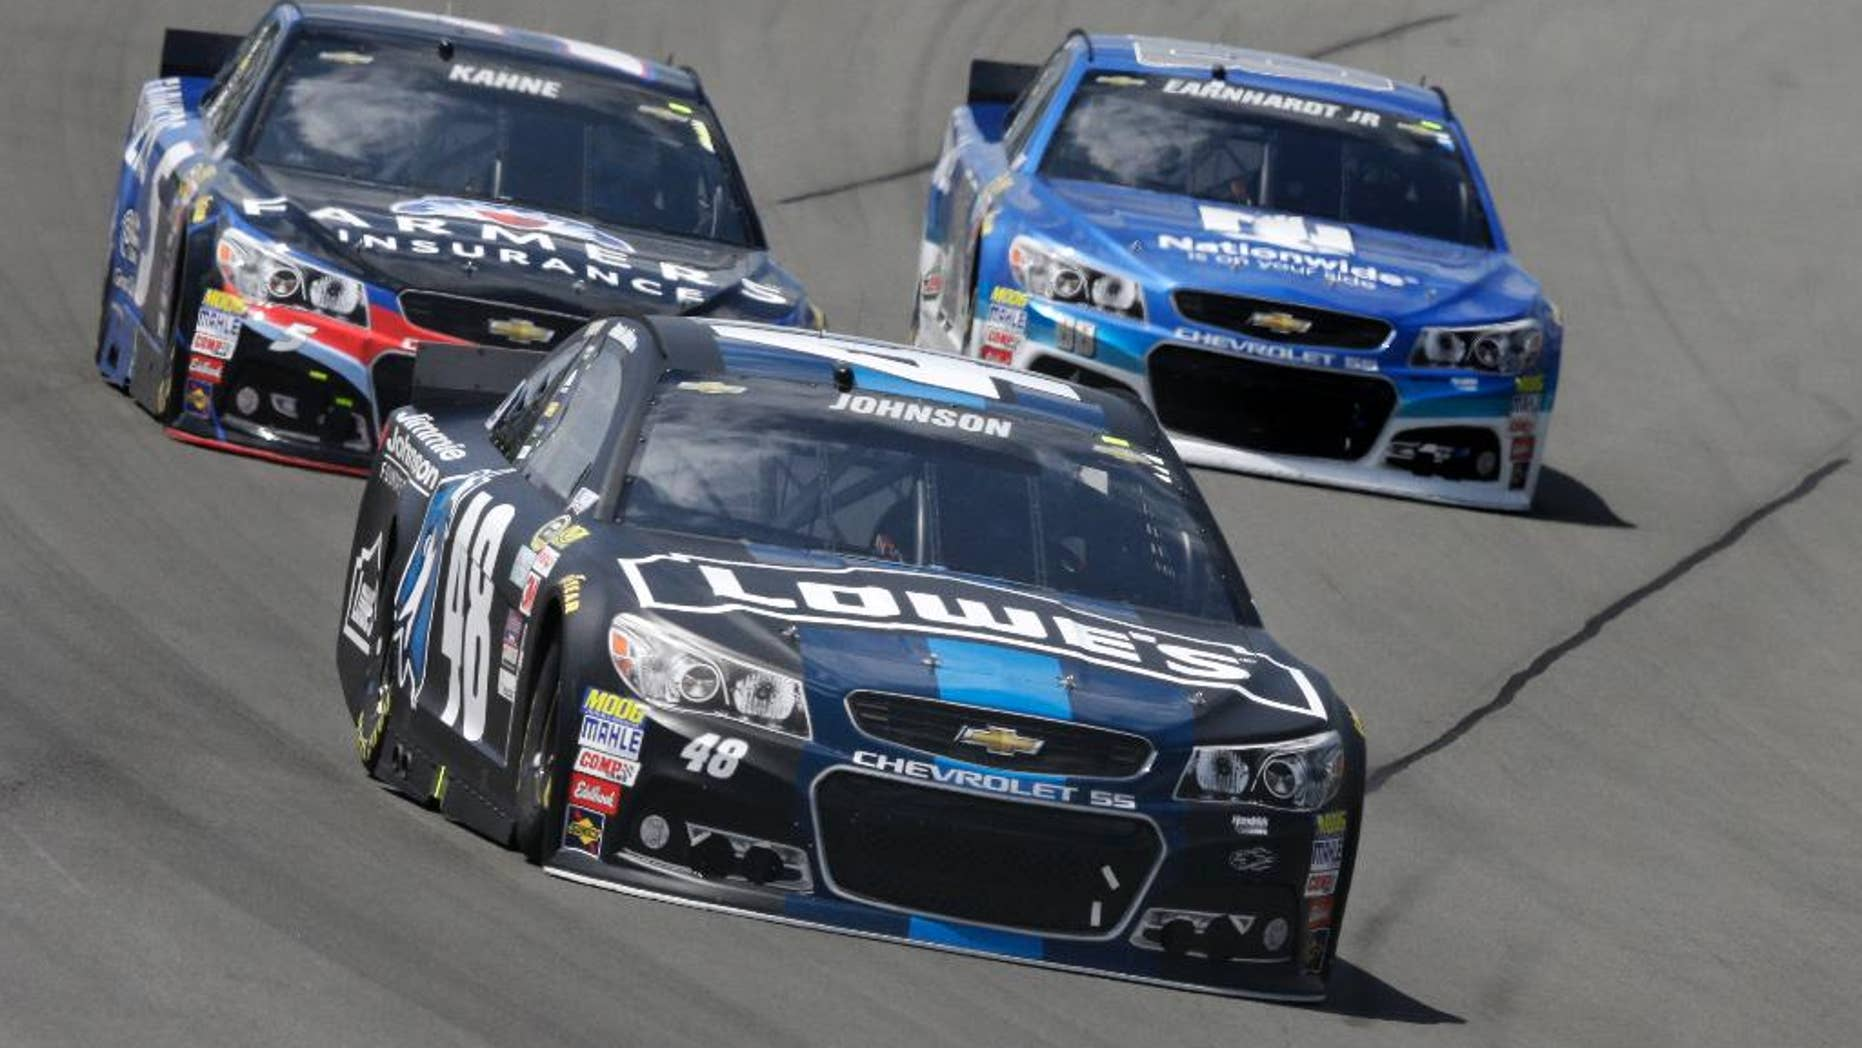 Jimmie Johnson (48) leads Dale Earnhardt Jr. (88) and Kasey Kahne (5) through Turn 3 during a NASCAR Sprint Cup Series auto race at Pocono Raceway in Long Pond, Pa., Sunday, June 7, 2015. (AP Photo/Mel Evans)